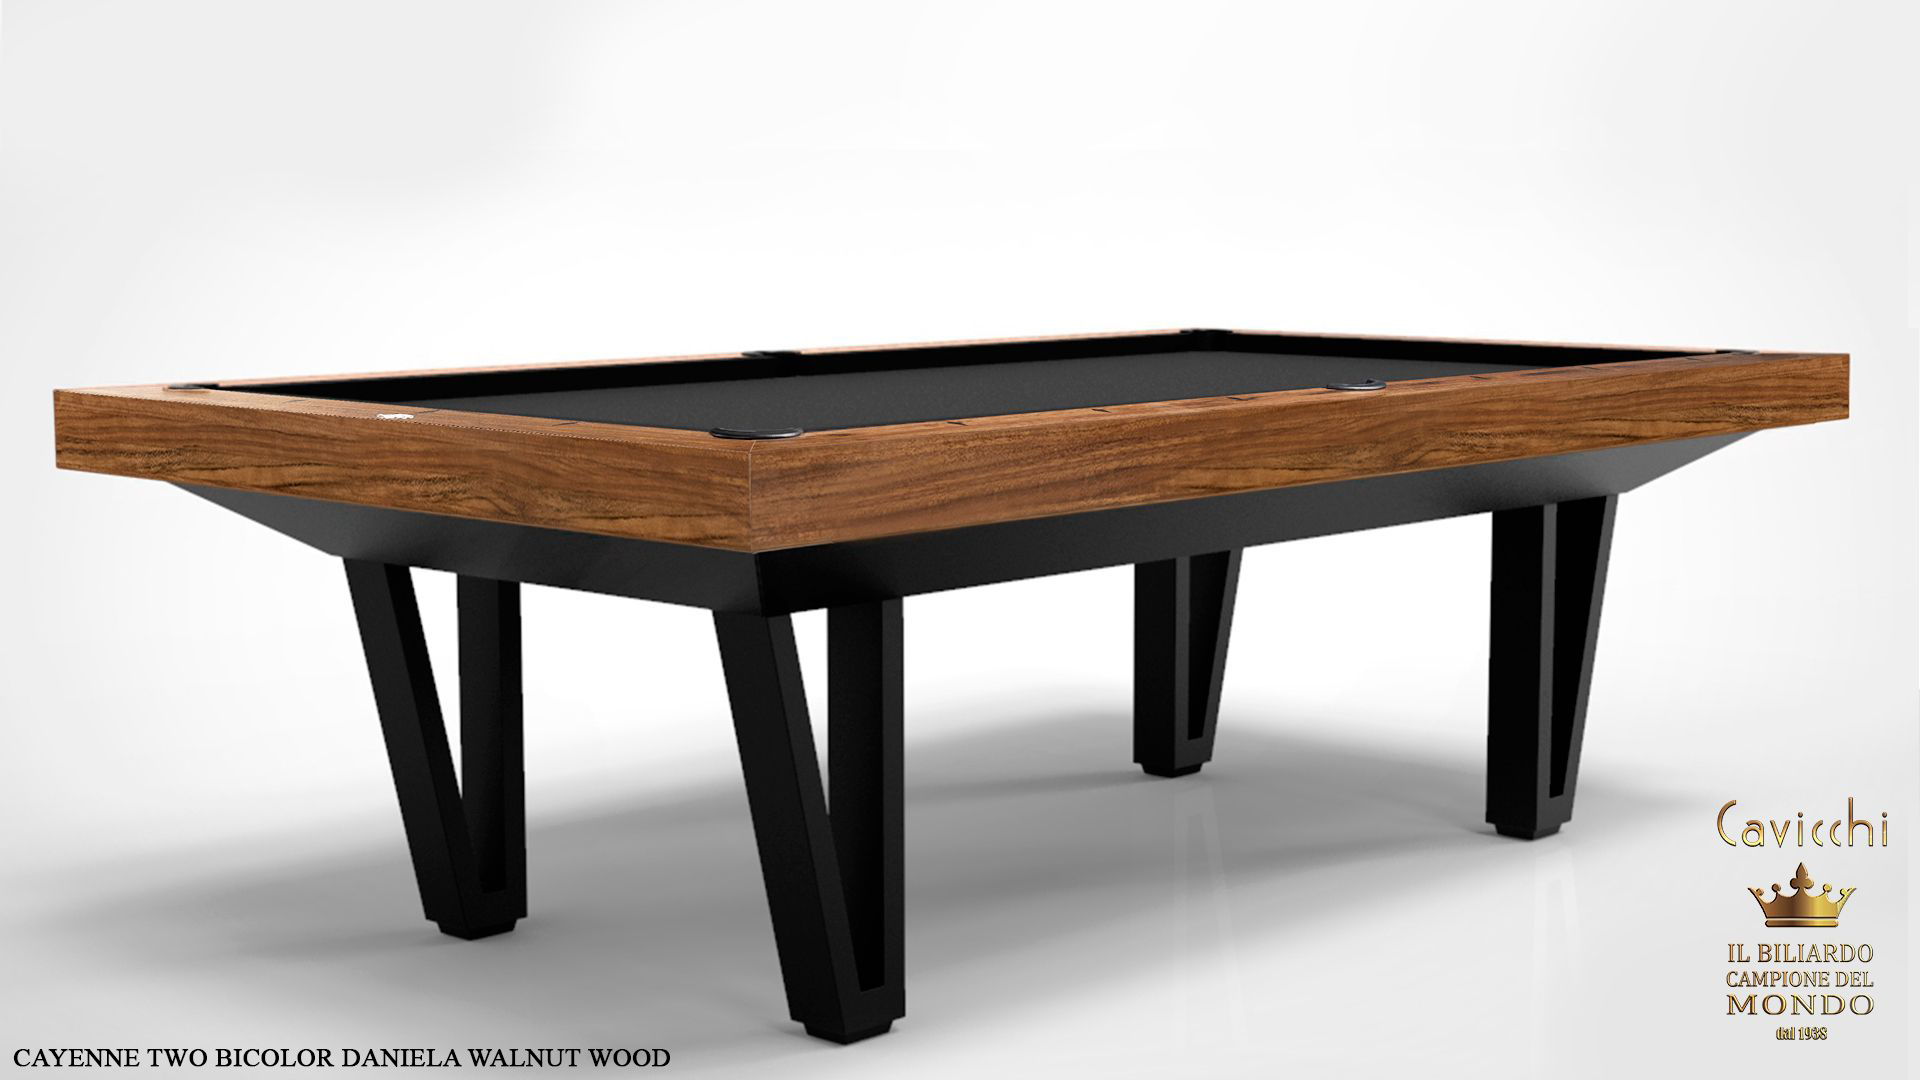 billiard table Cavicchi Cayenne Two Bicolor  - Showroom Shop 4